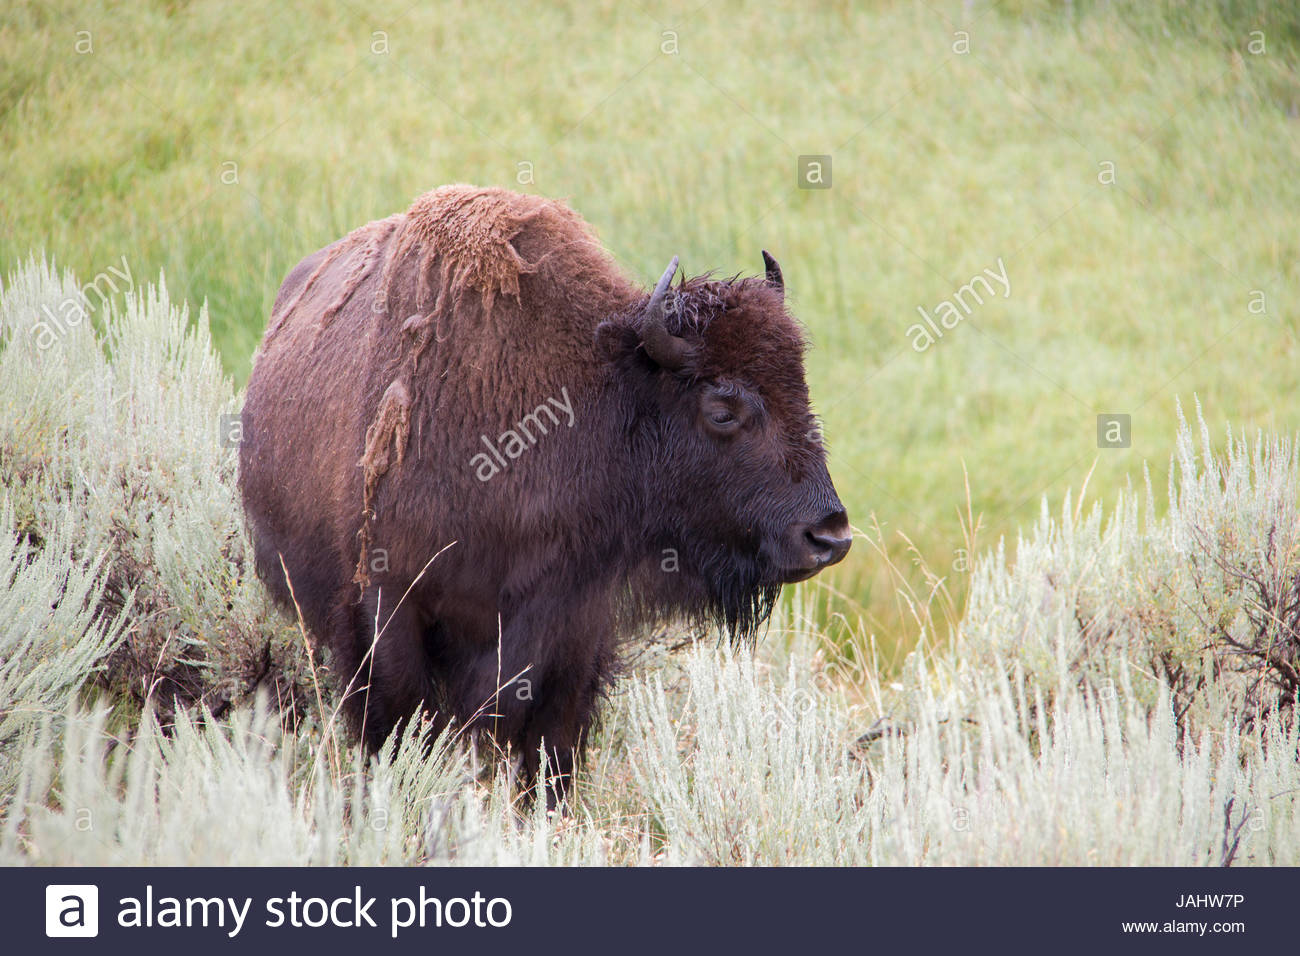 Portrait of a bison in the Lamar Valley. Stock Photo